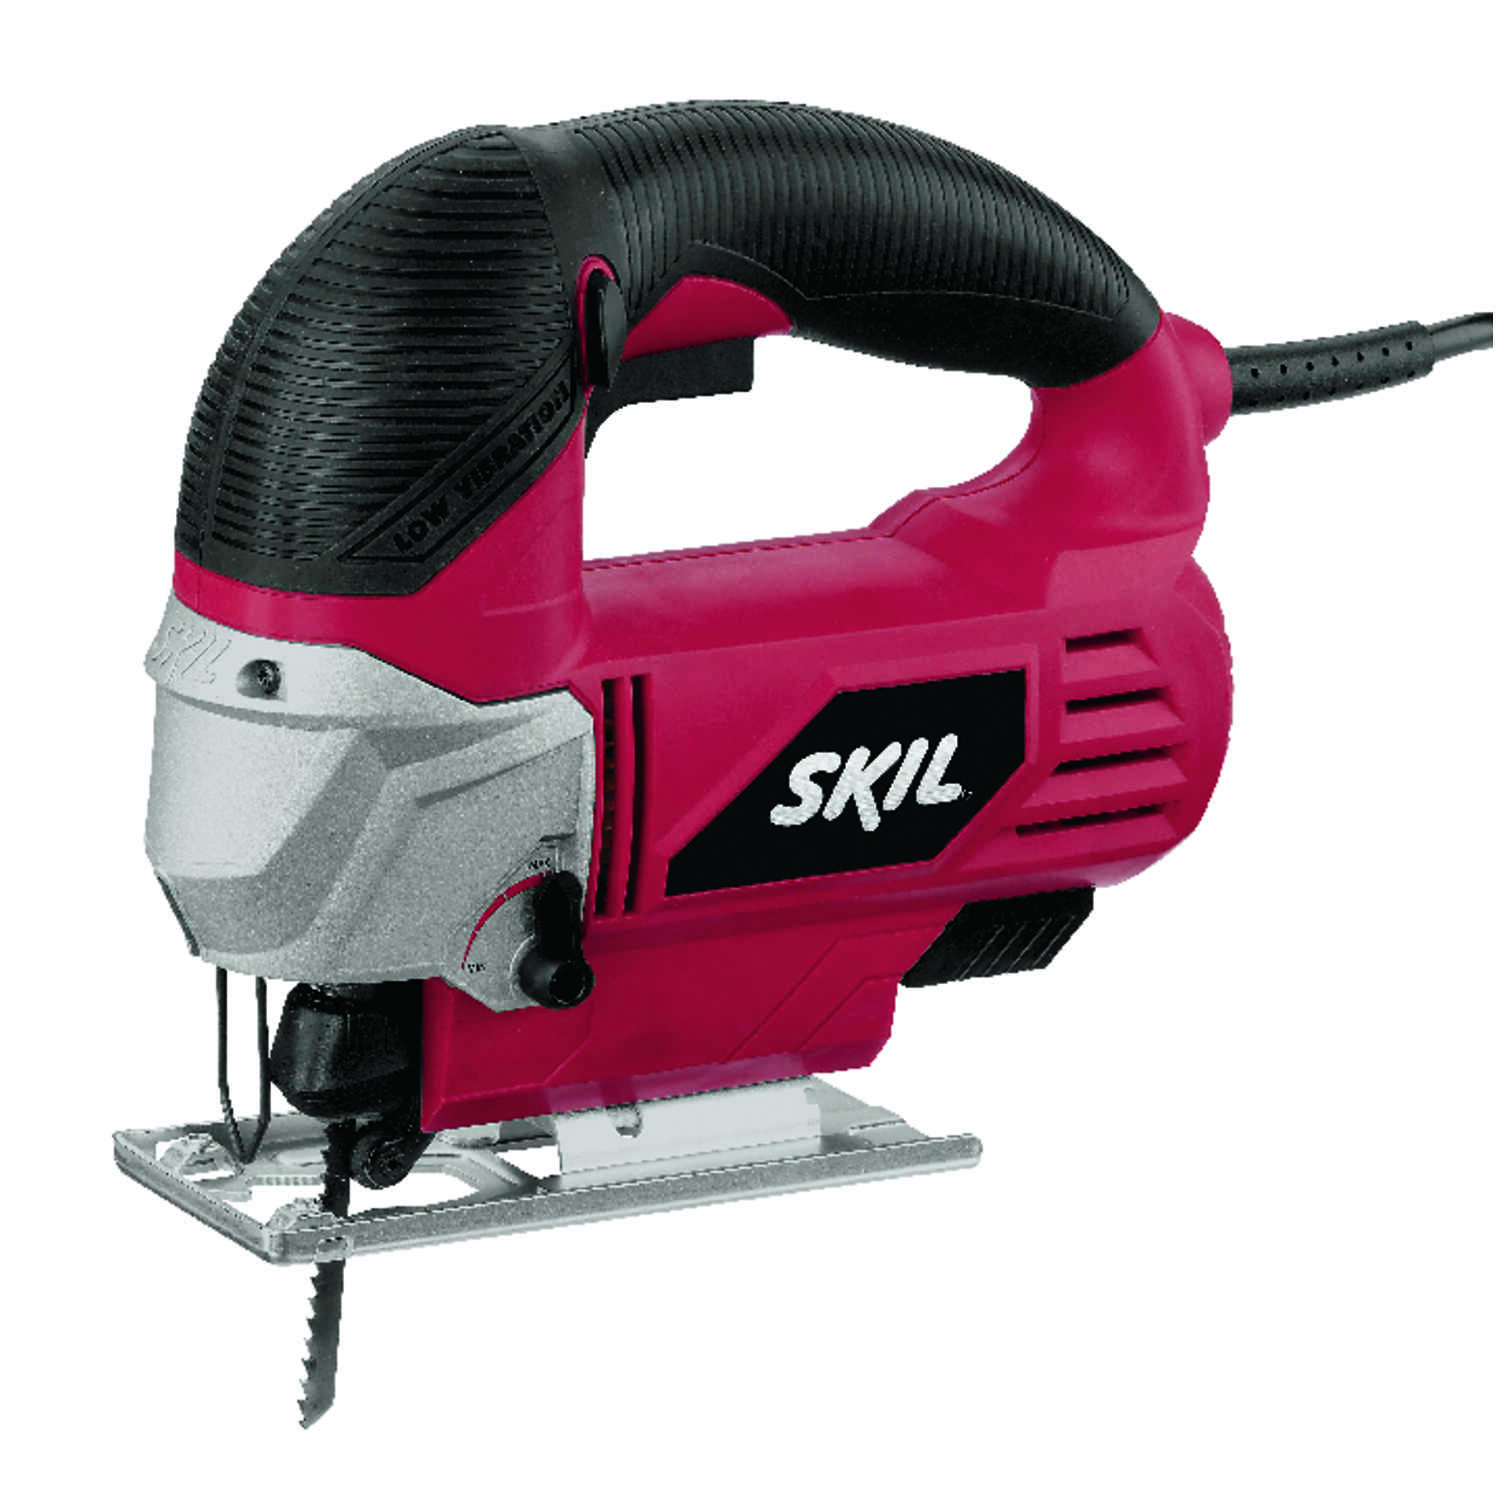 Skil  3/4 in. Corded  Keyless Orbital Jig Saw  120 volt 5.5 amps 3200 spm